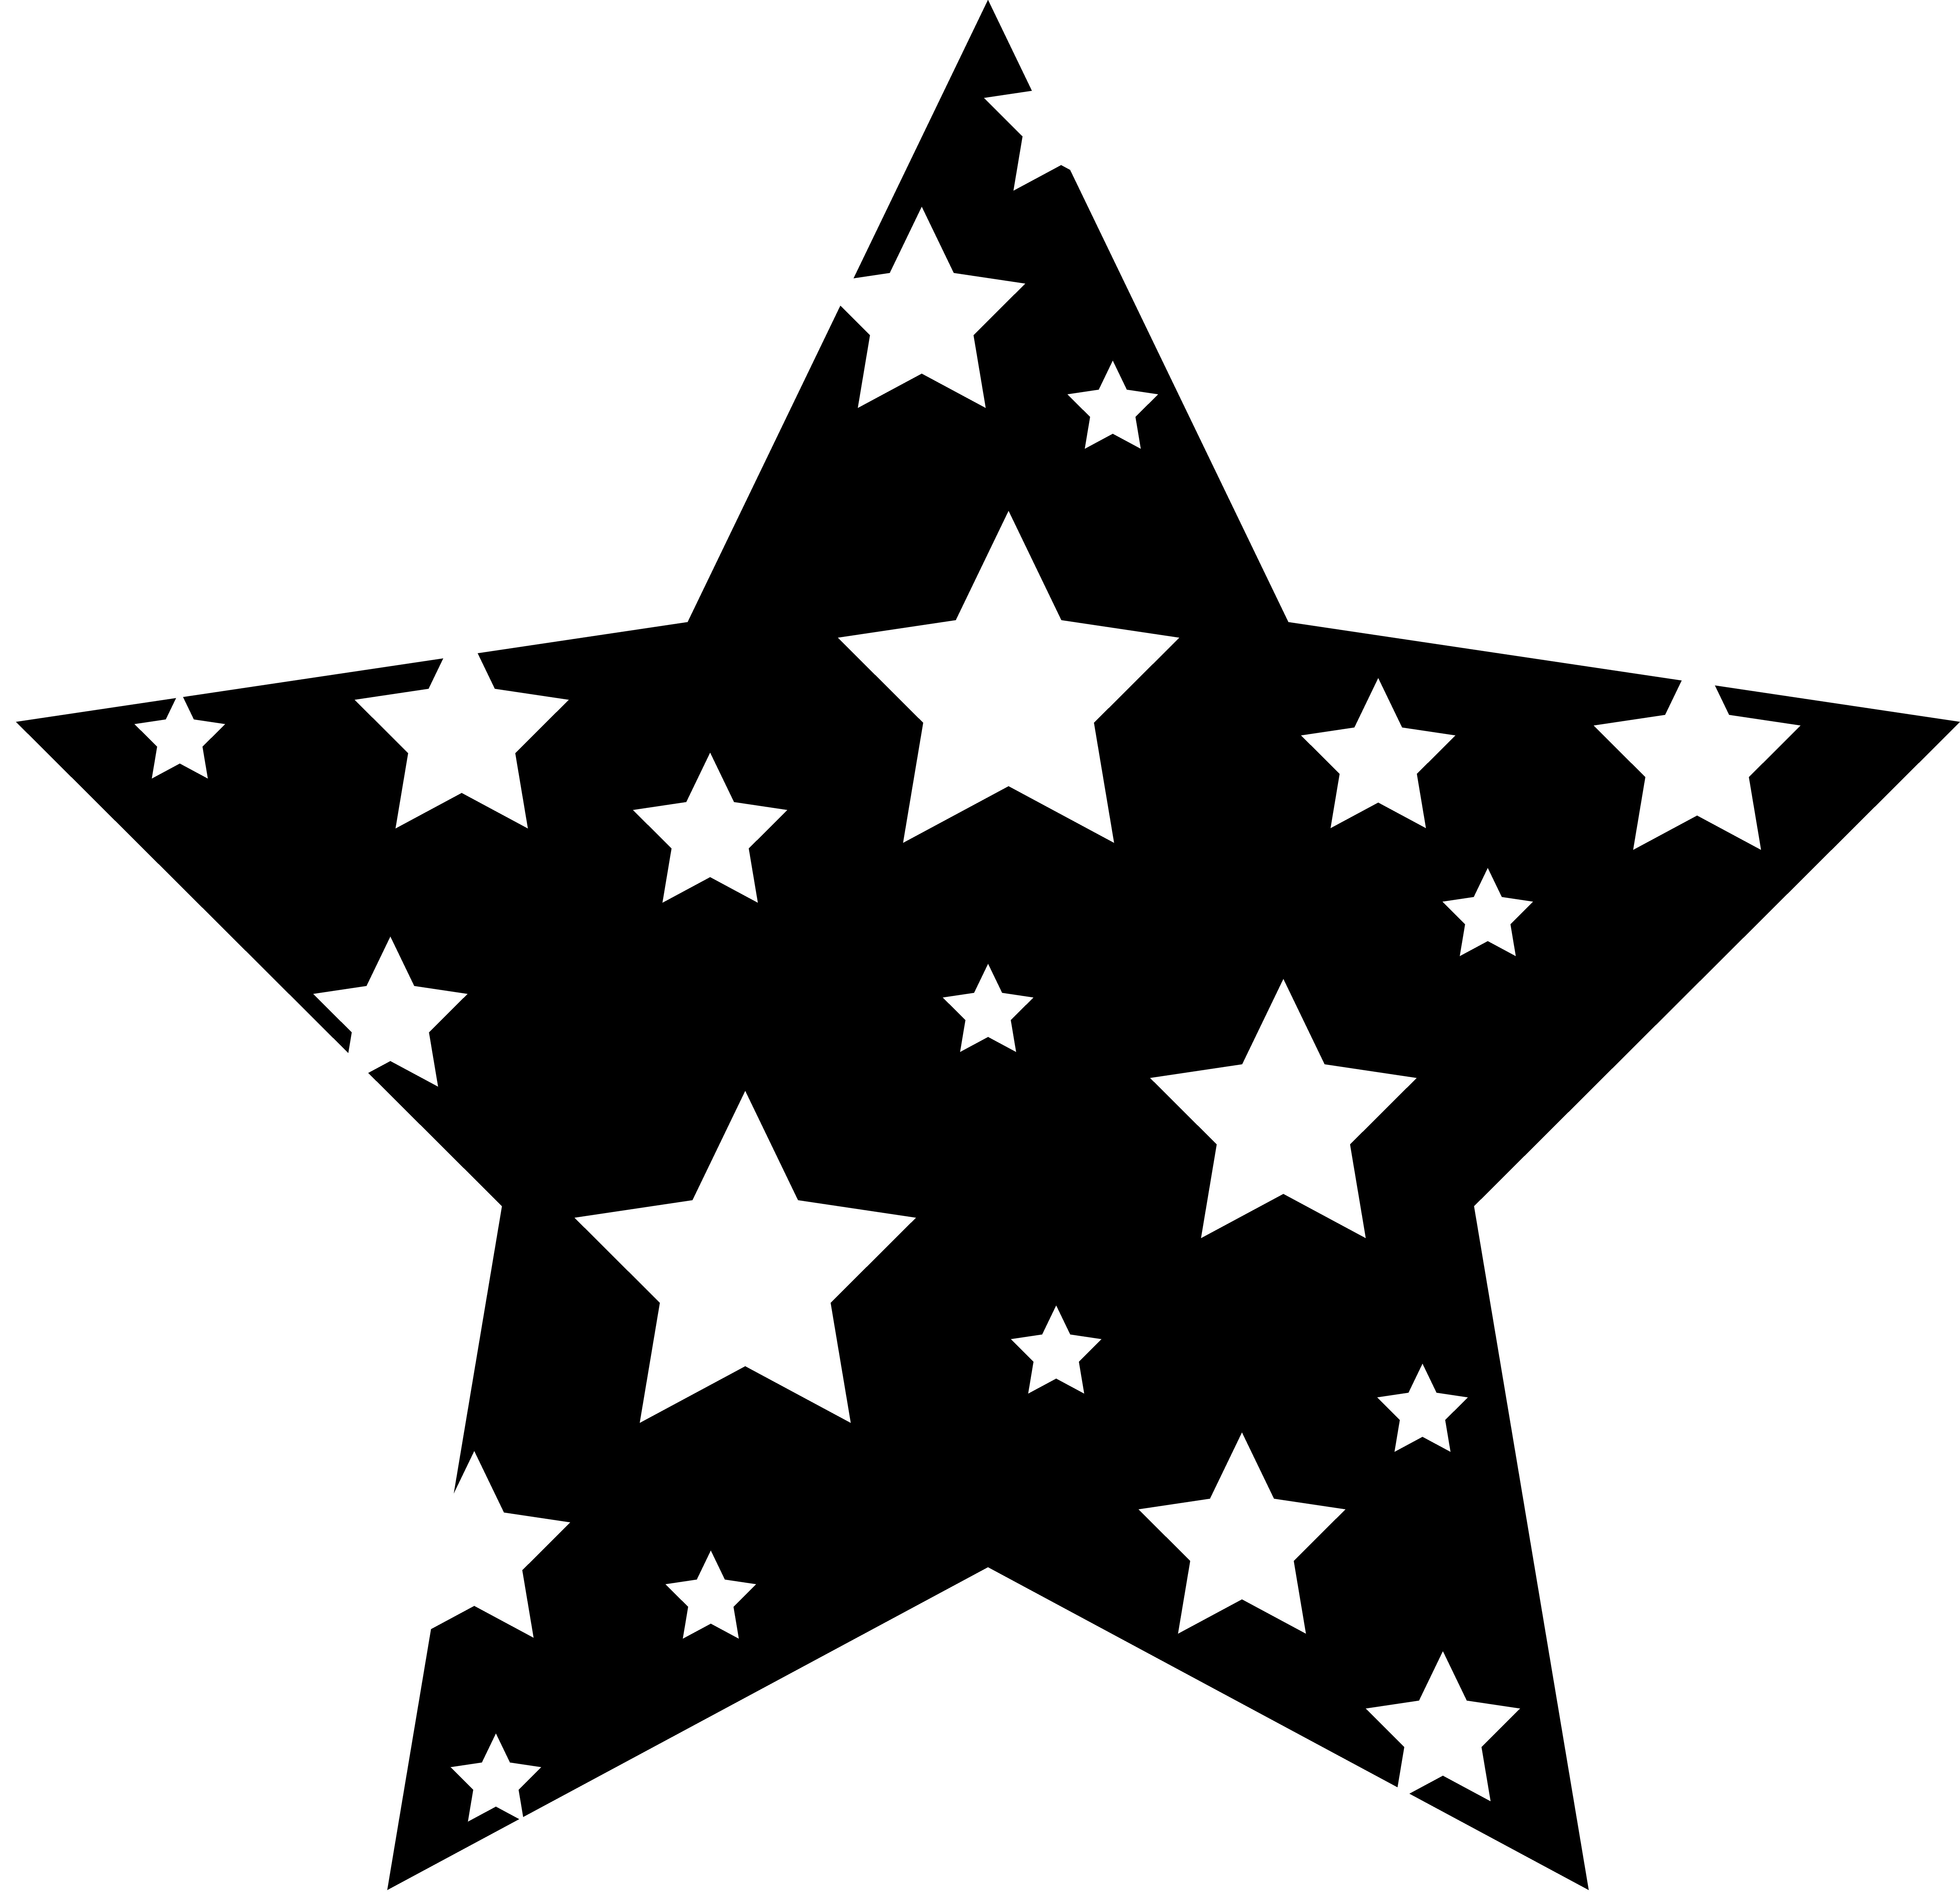 Vectorial drawing star. Free graphic cliparts download